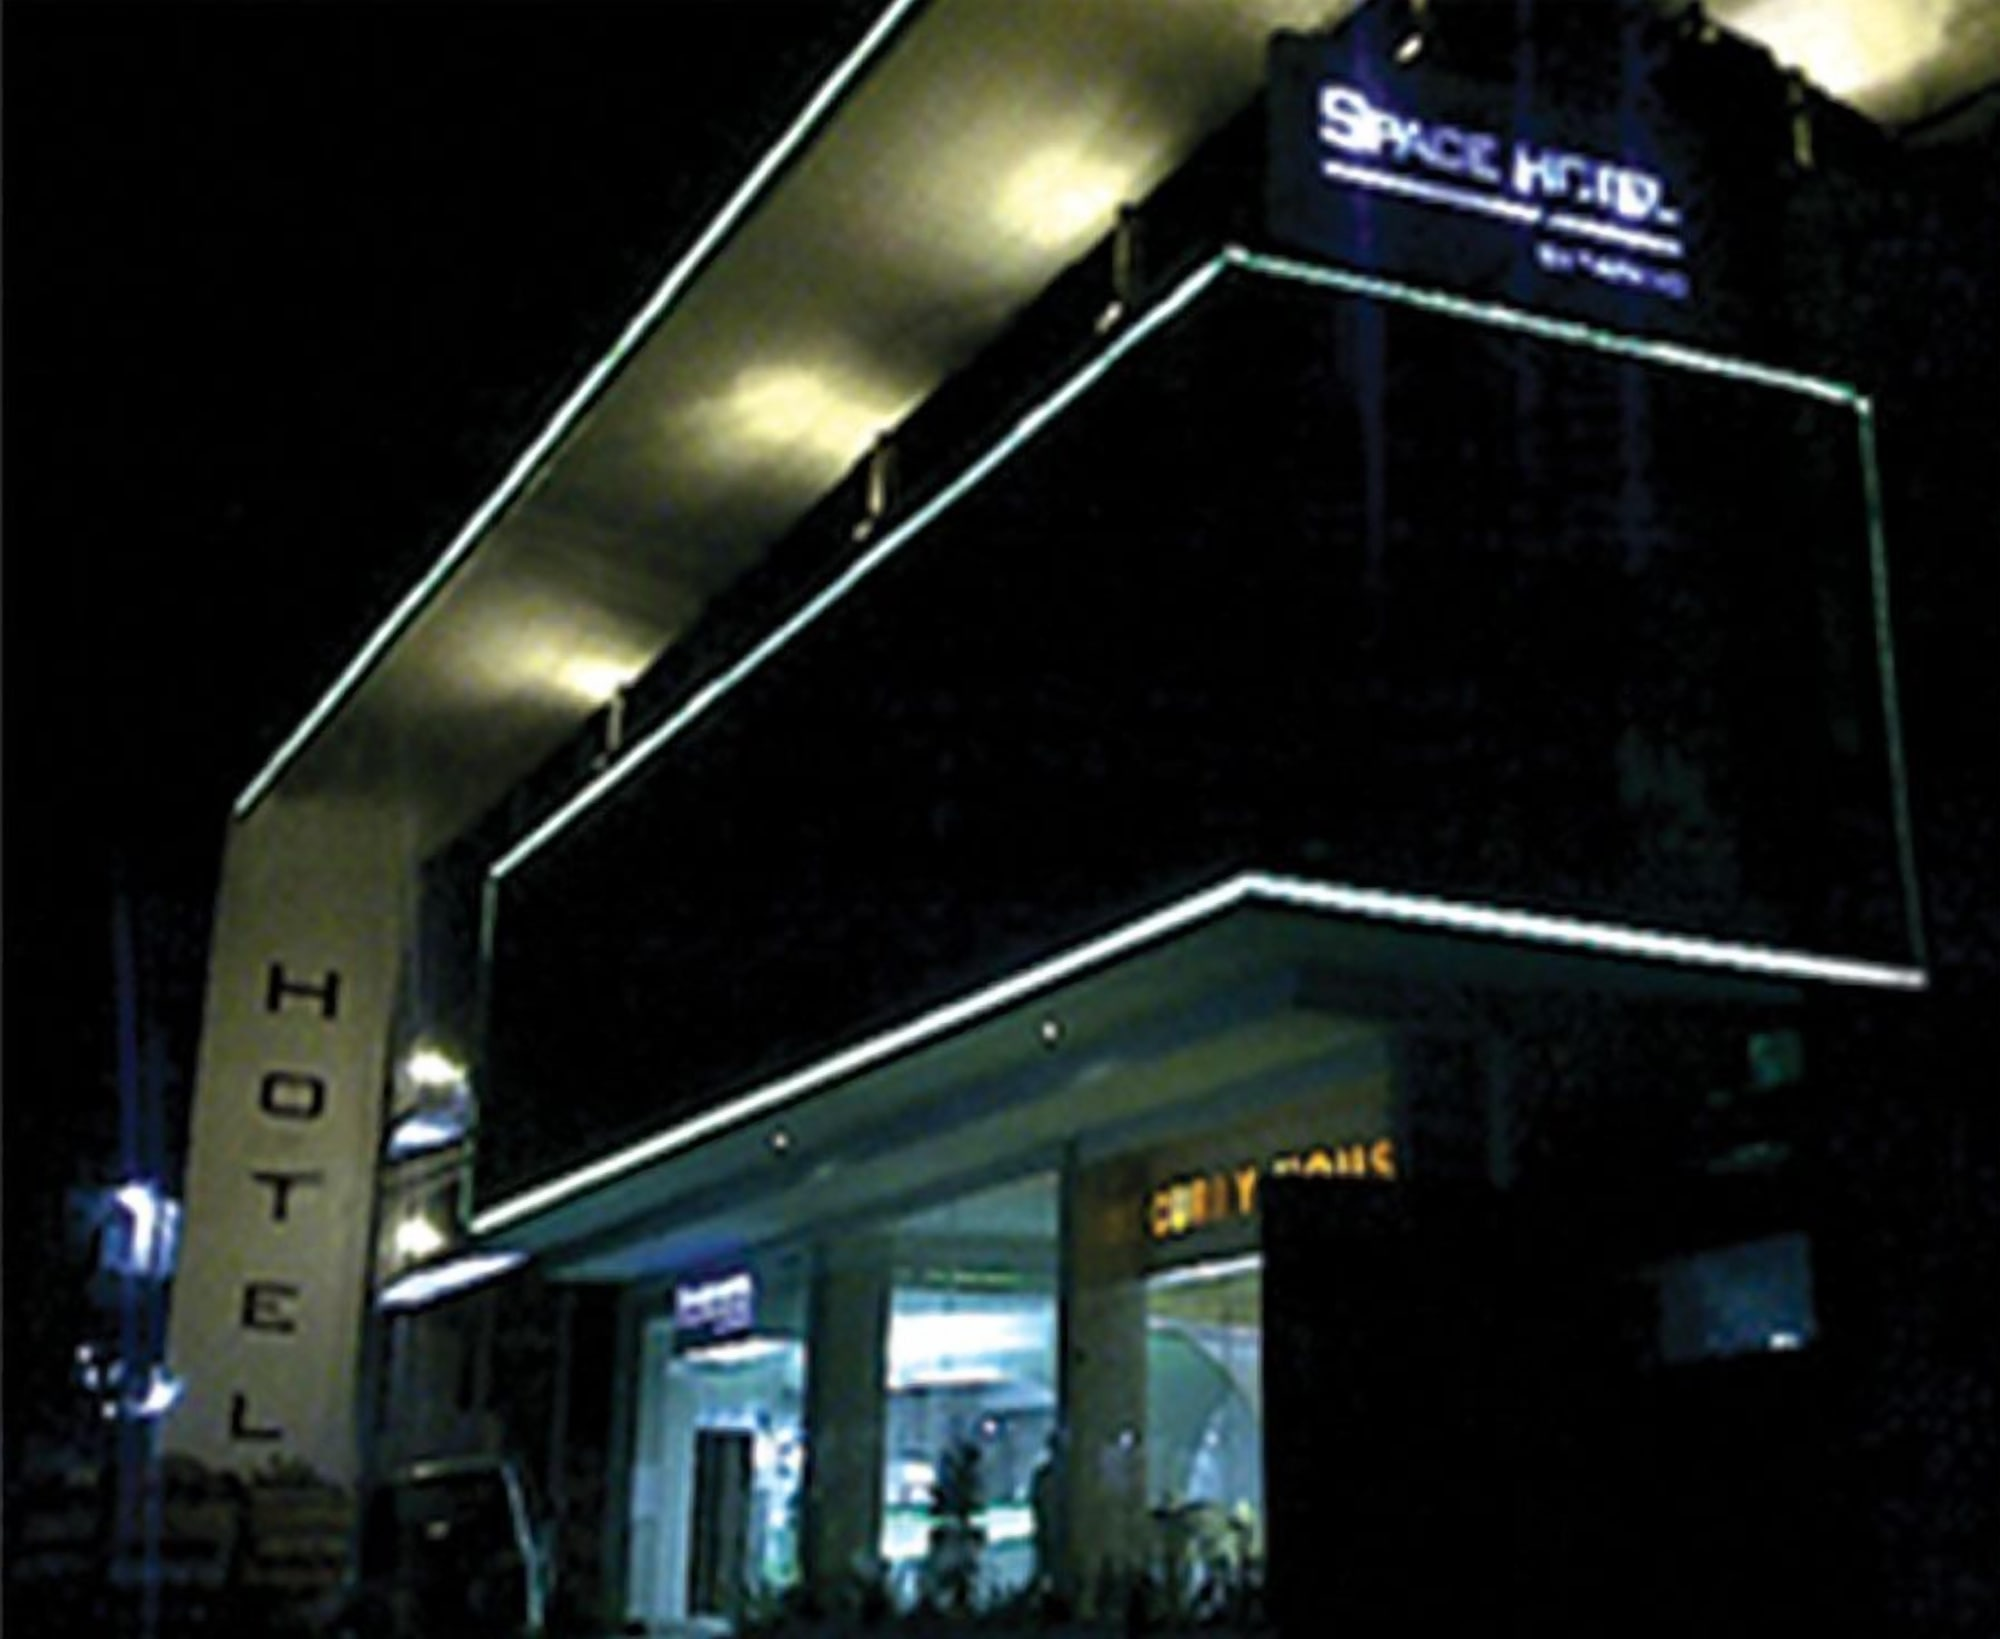 Space Hotel by Papaho, Bogor